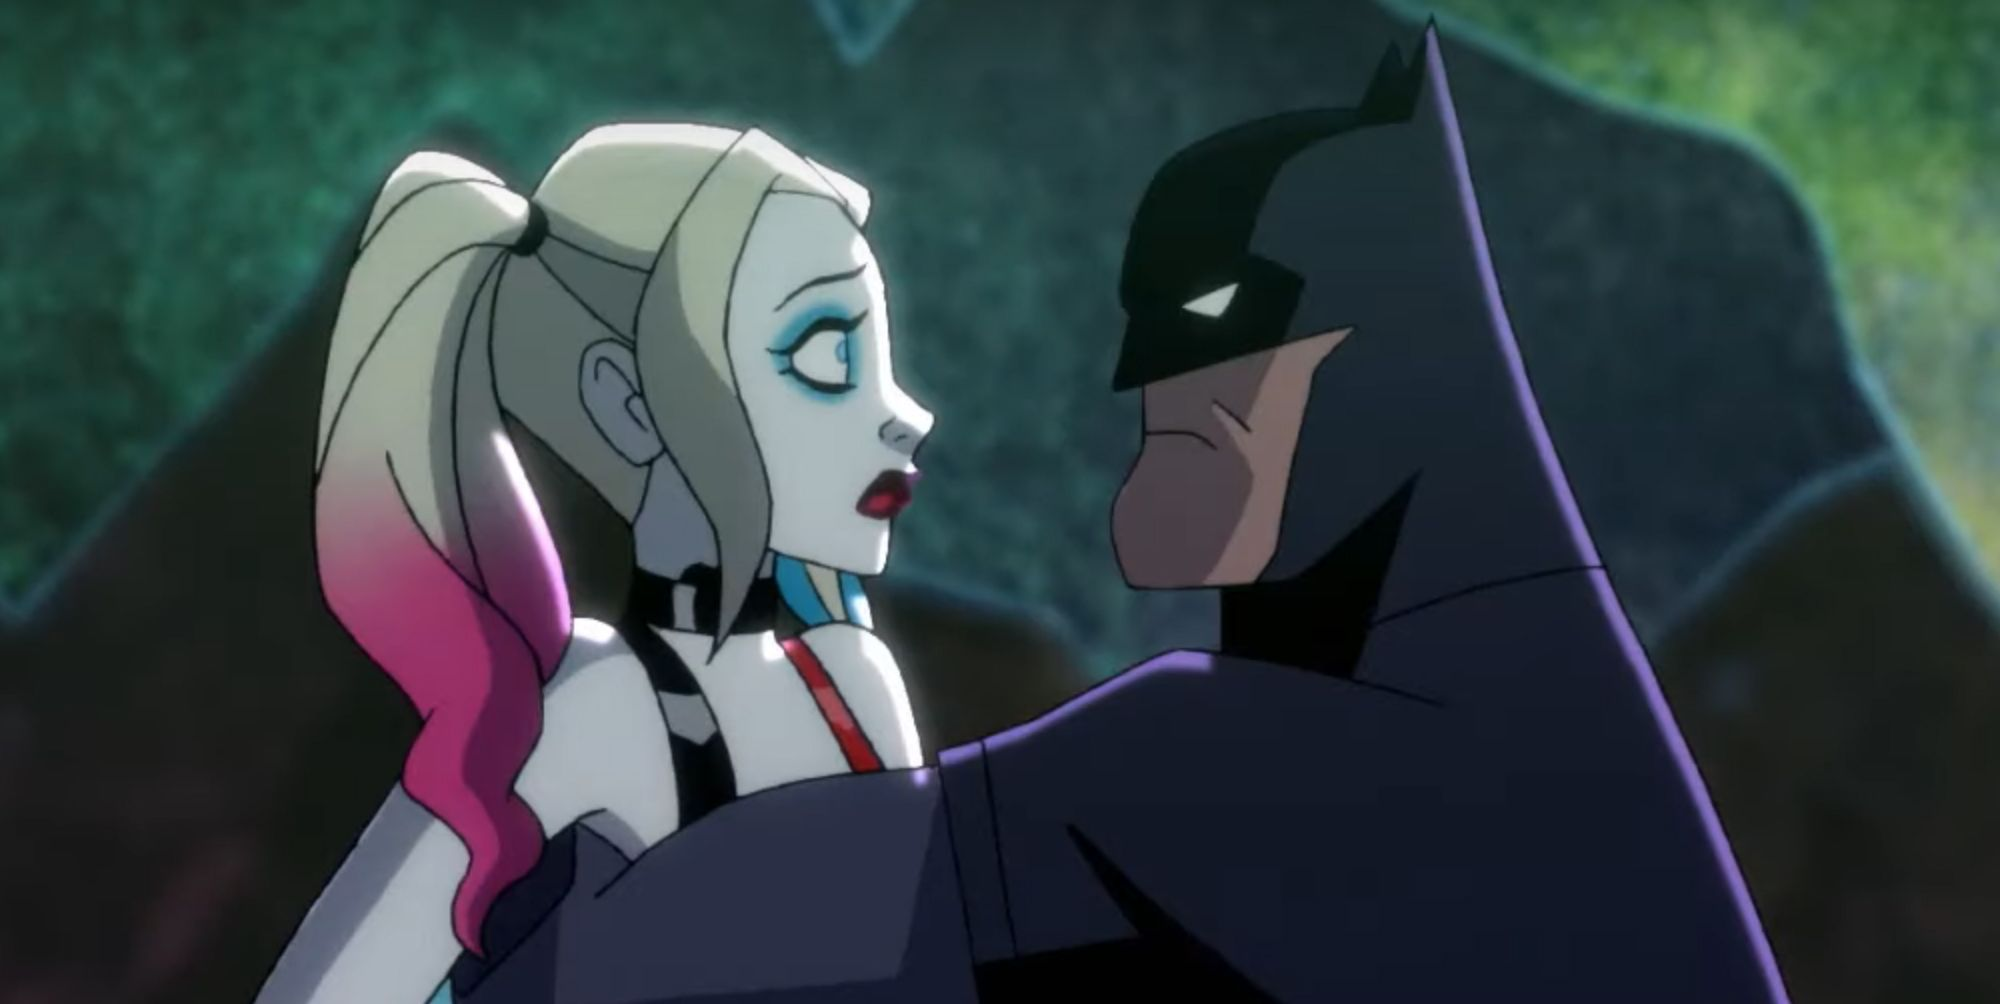 Harley Quinn Trailer Reveals the Animated Heroine's Coming Misadventures